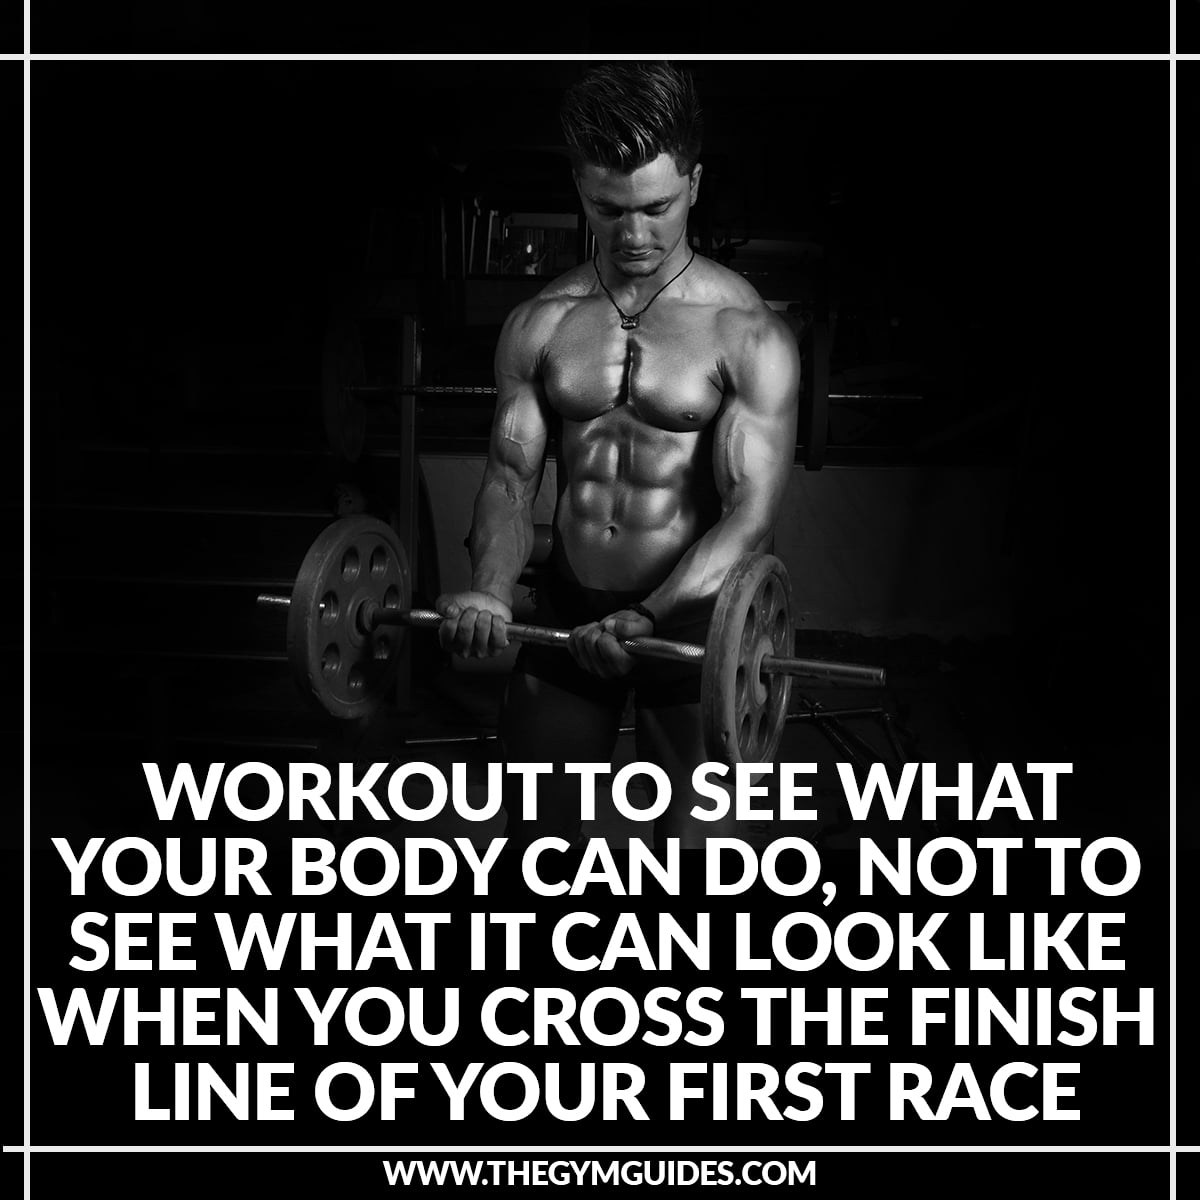 25 Gym Quotes That Will Make You Jump Out Of Bed Every Morning